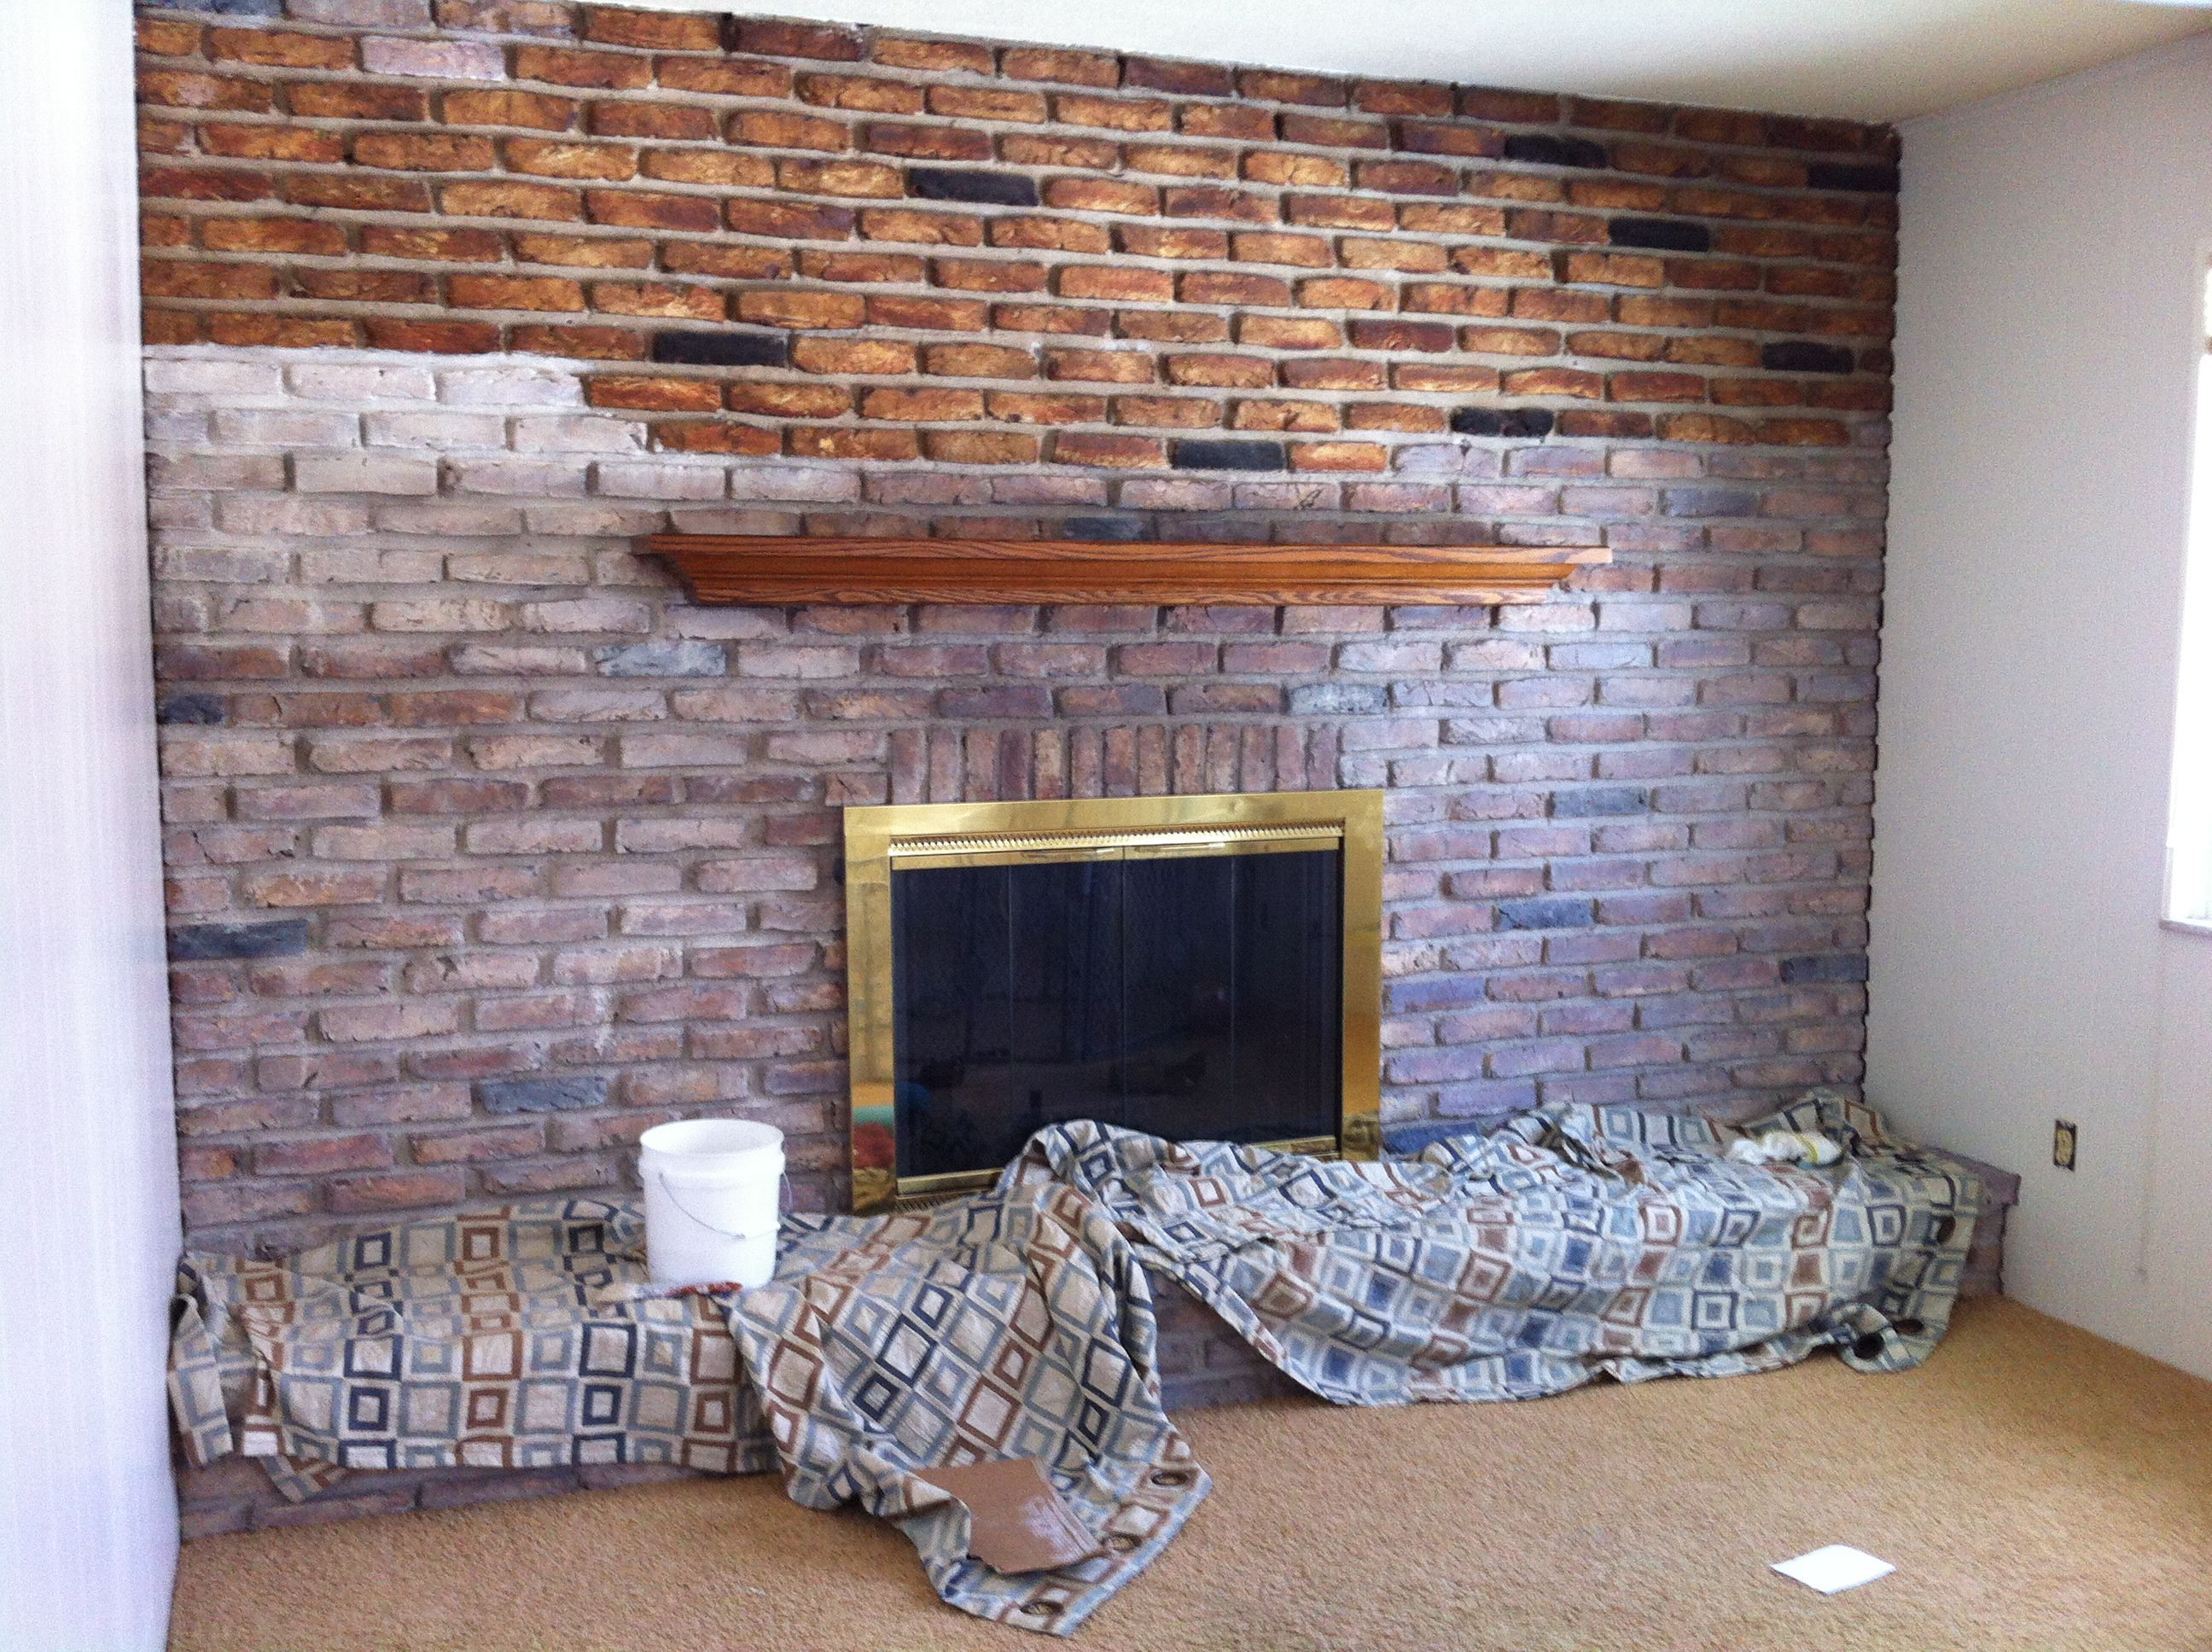 Mantel Kits For Brick Fireplace Image Result For Whitewashed Fireplace Mantel Fire Place